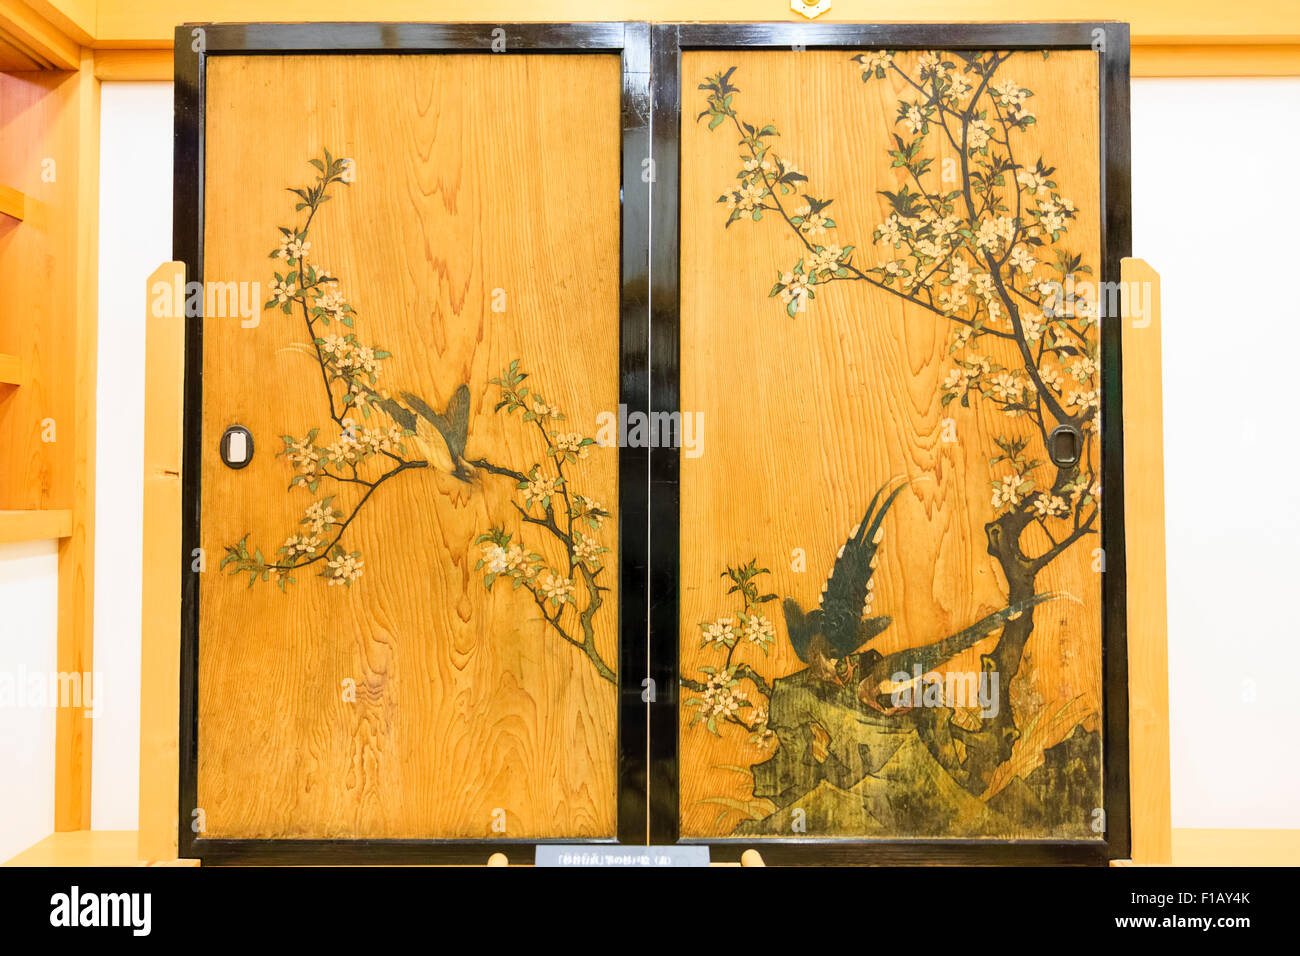 Japan, Kumamoto castle, Goten Palace, reconstructed Honmarugoten, Shokun-no-ma room, painted screens - Stock Image